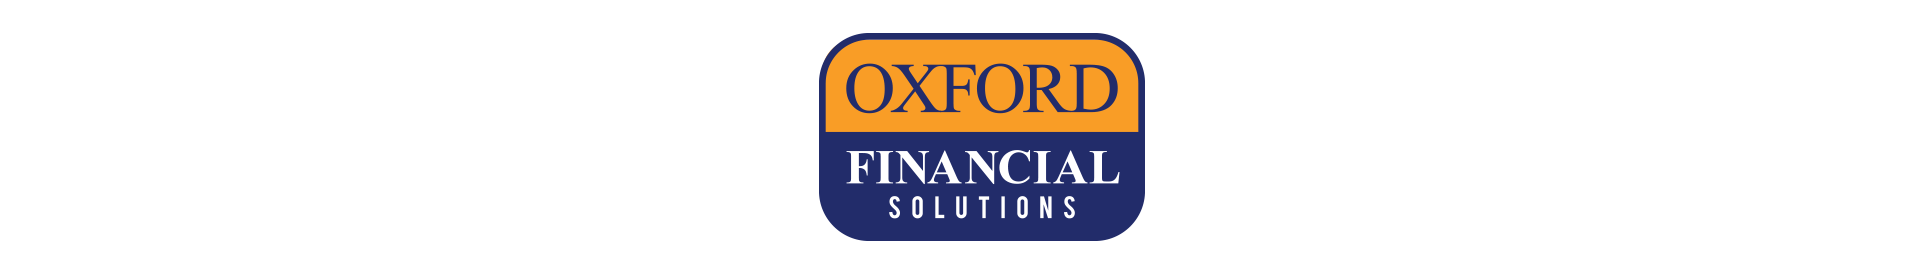 Welcome to Oxford Financial Solutions